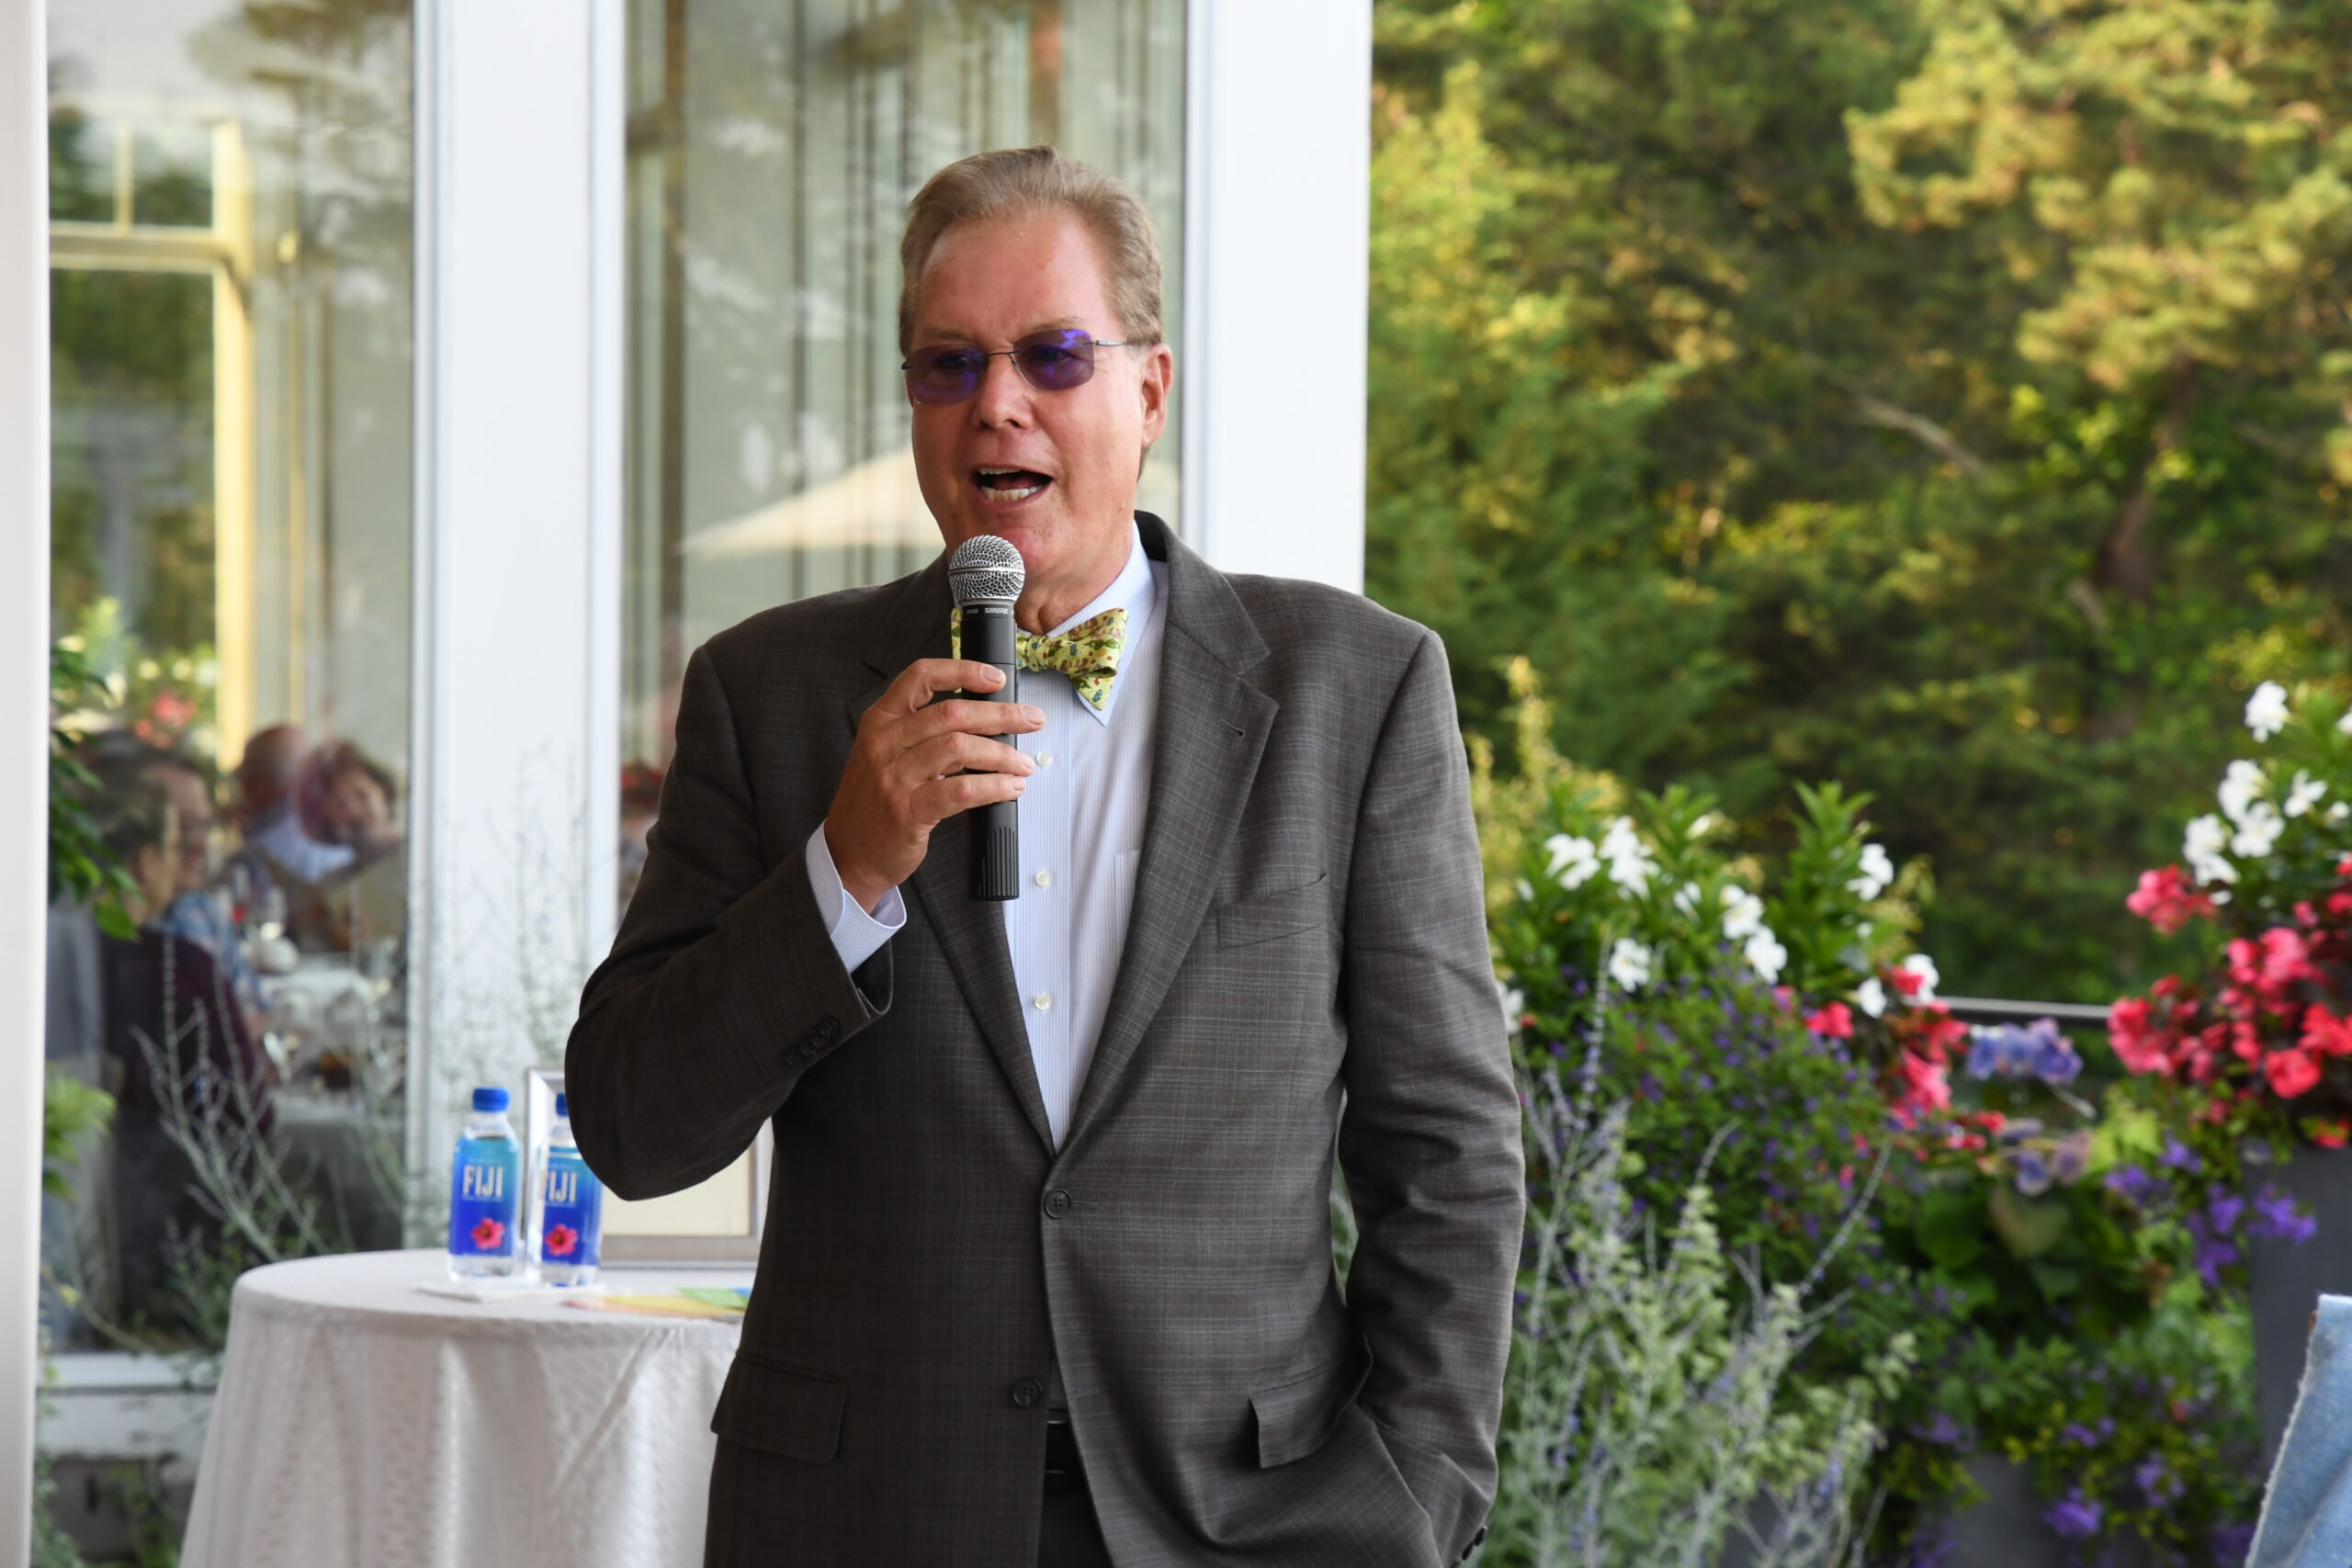 Tony Shepley speaking at our Oysters & Champagne in 2019.